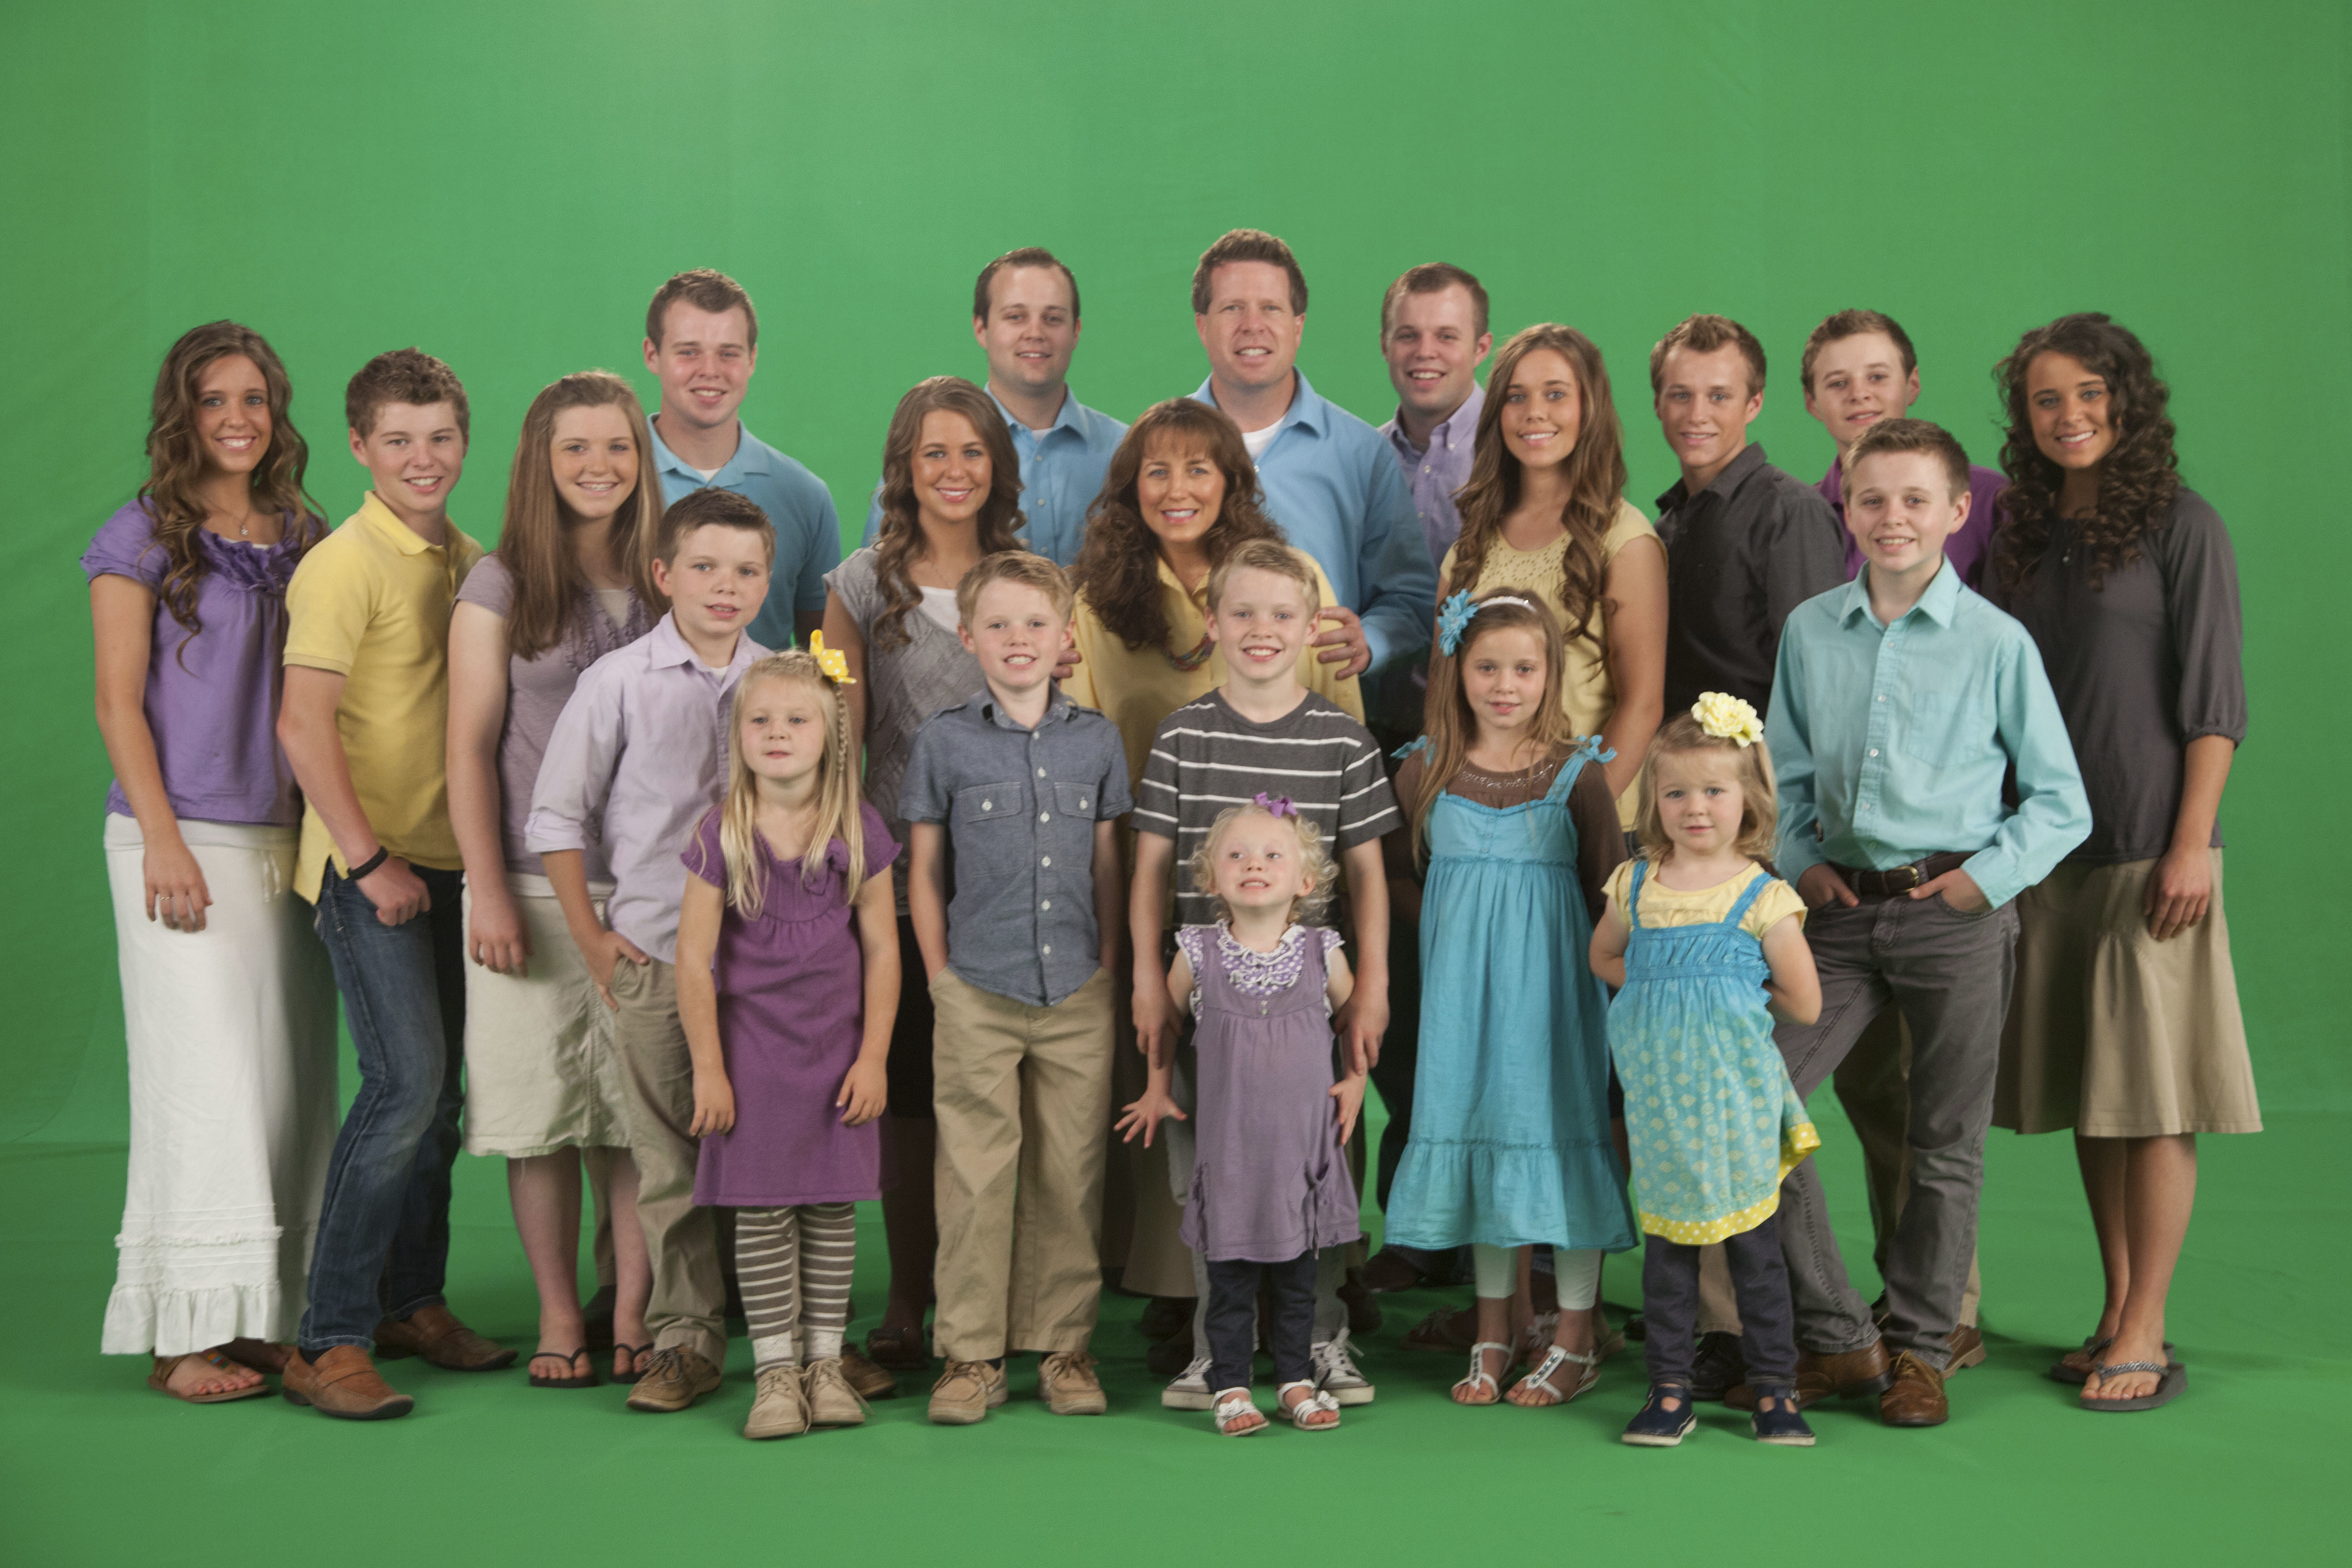 """The Duggar family poses in a promotional photo for TLC's """"19 Kids and Counting."""""""